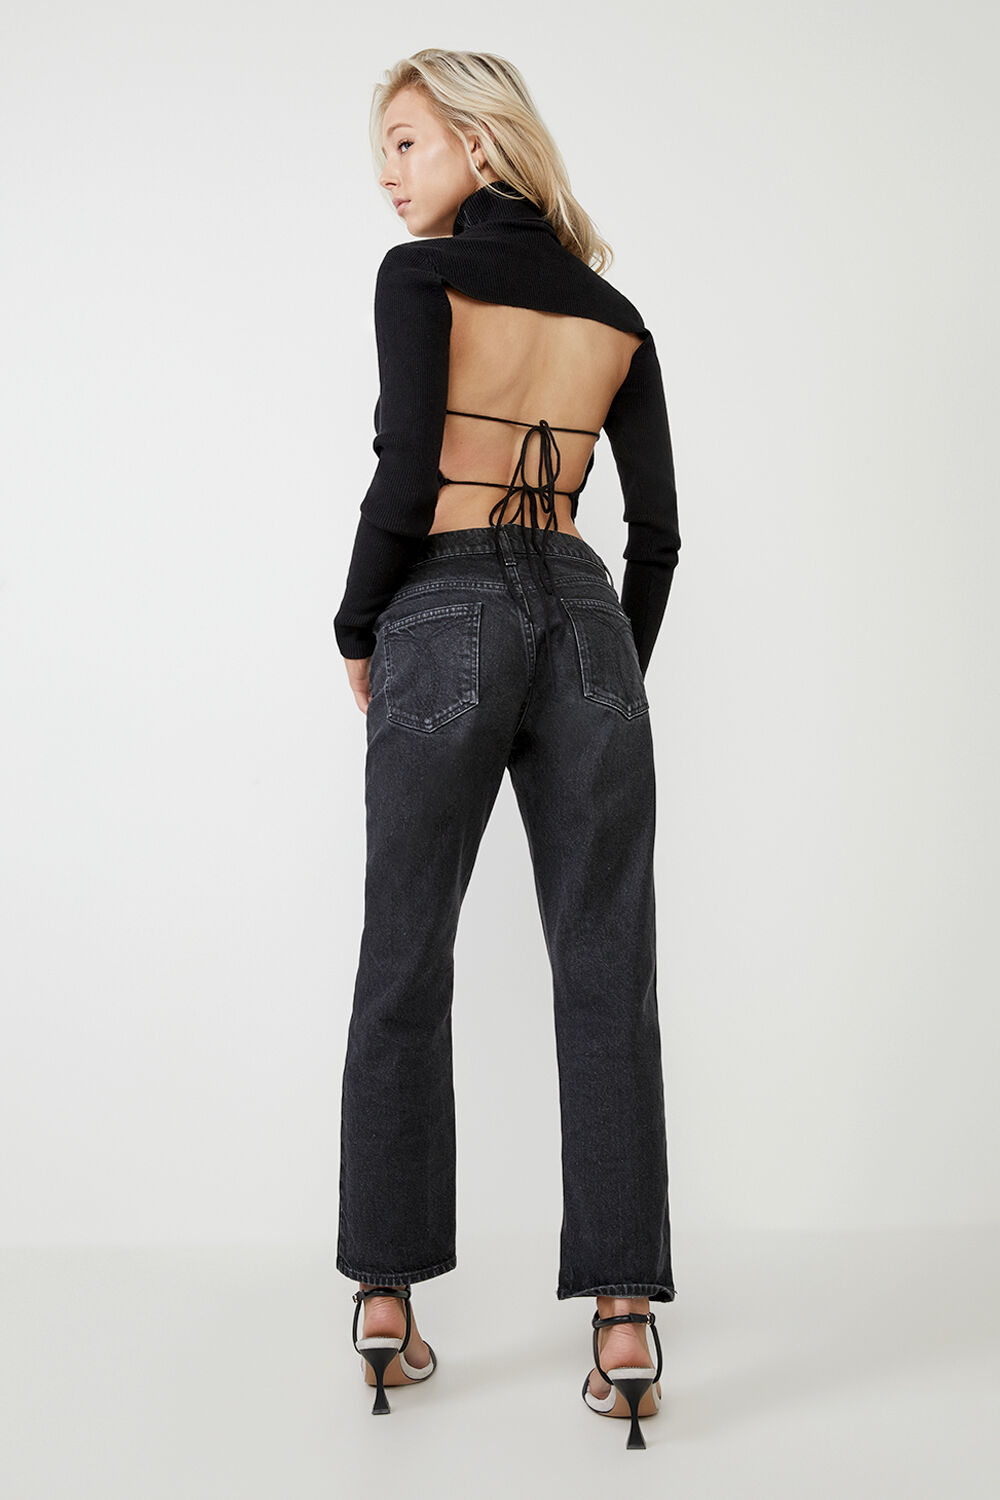 BACKLESS KNIT TOP in colour CAVIAR